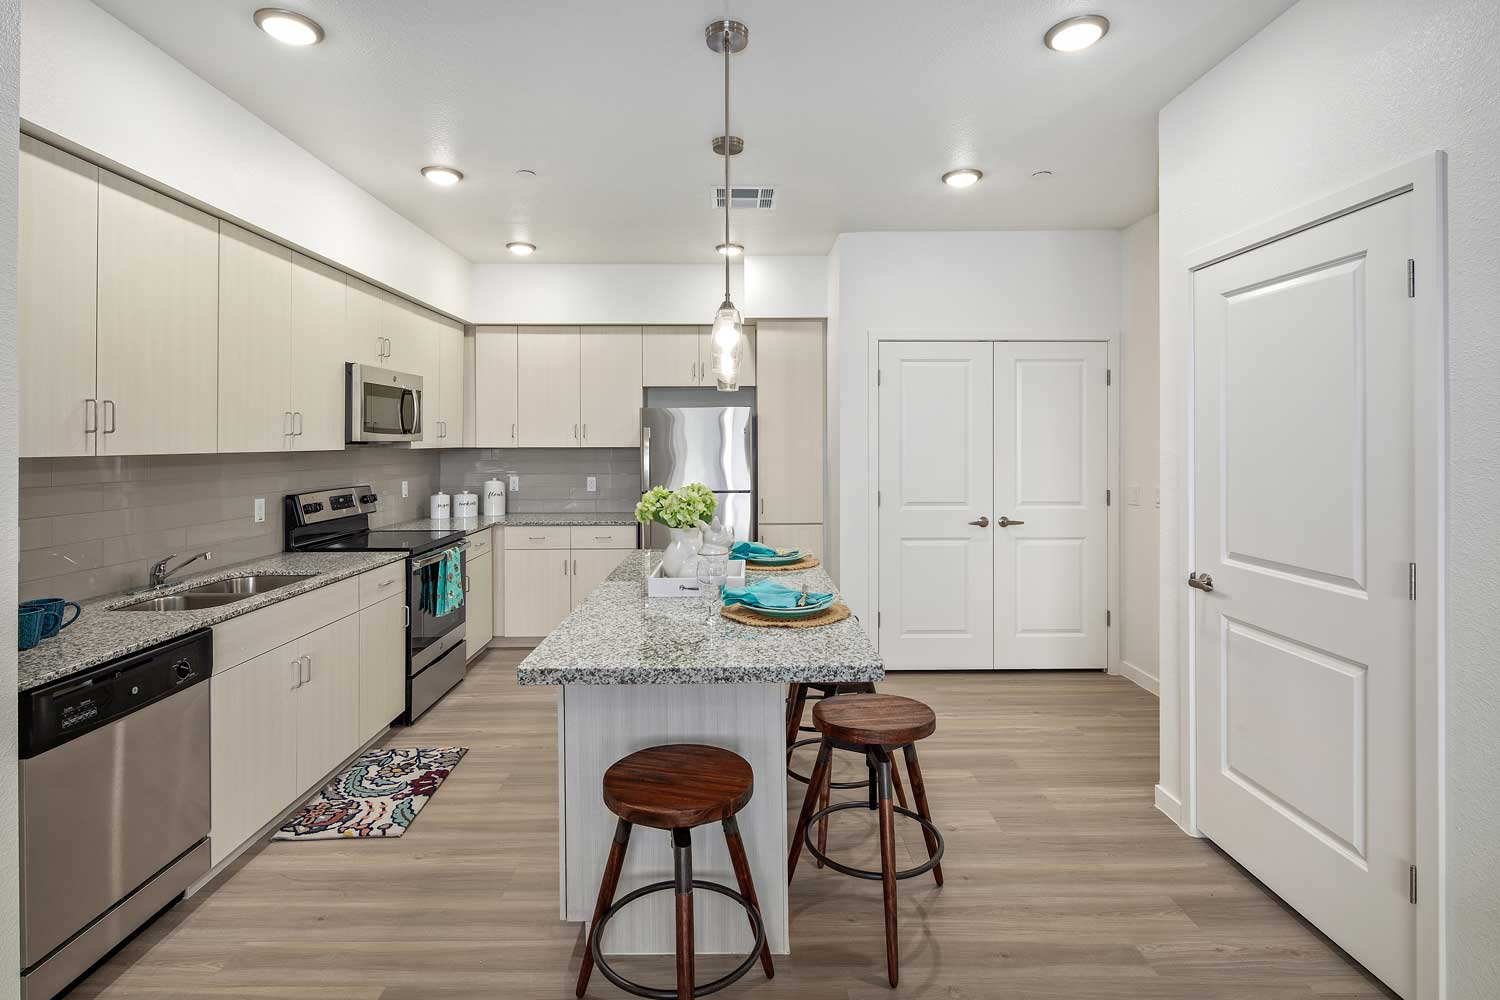 Stylish Kitchen at Winfield at the Ranch Apartments in Prescott, AZ